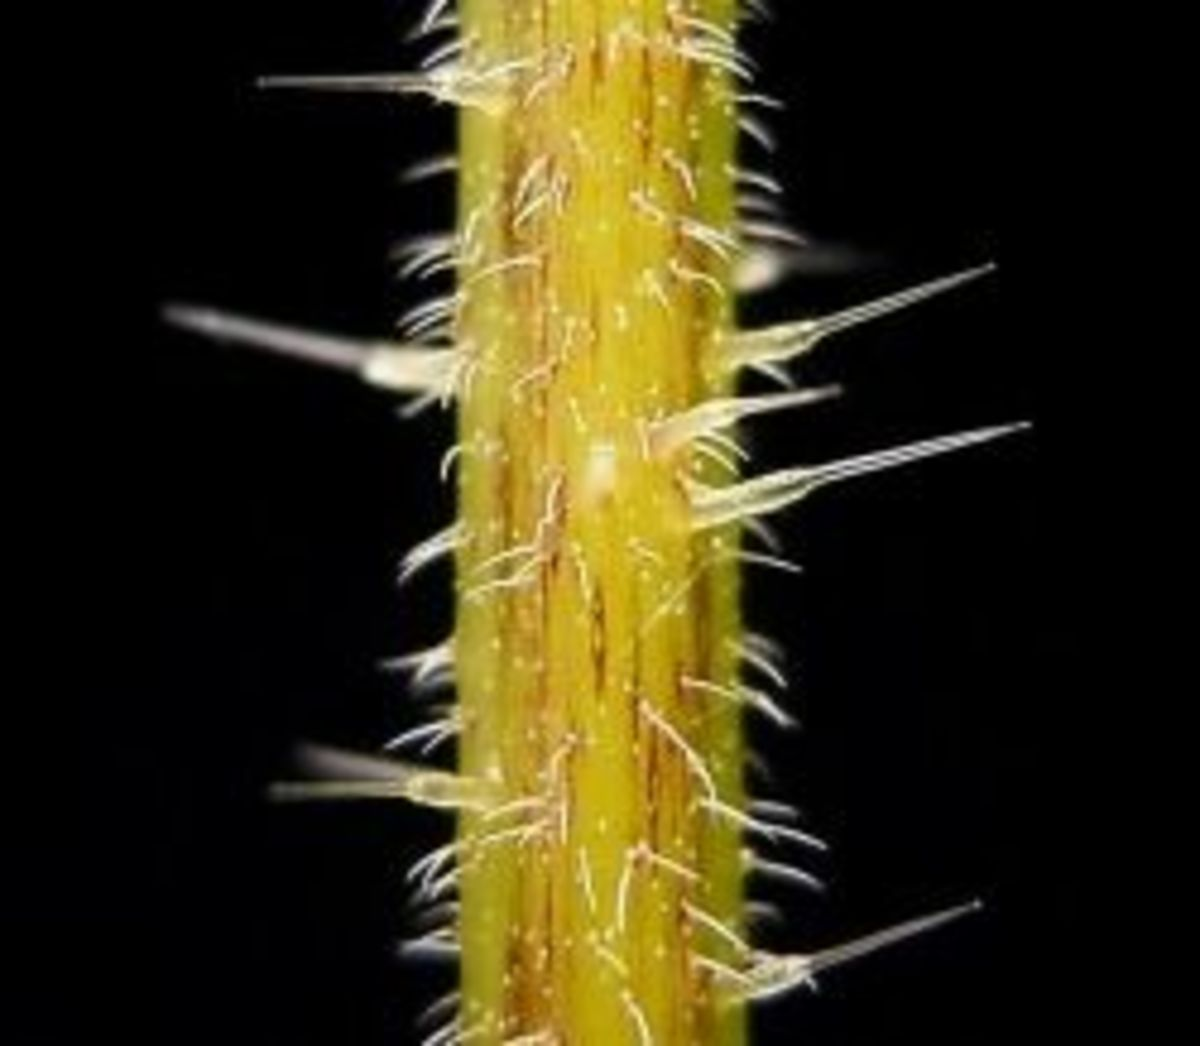 See how each of these hairs is wider at the base?  There is a chemical concoction inside each one that will sting your skin.  Watch out!